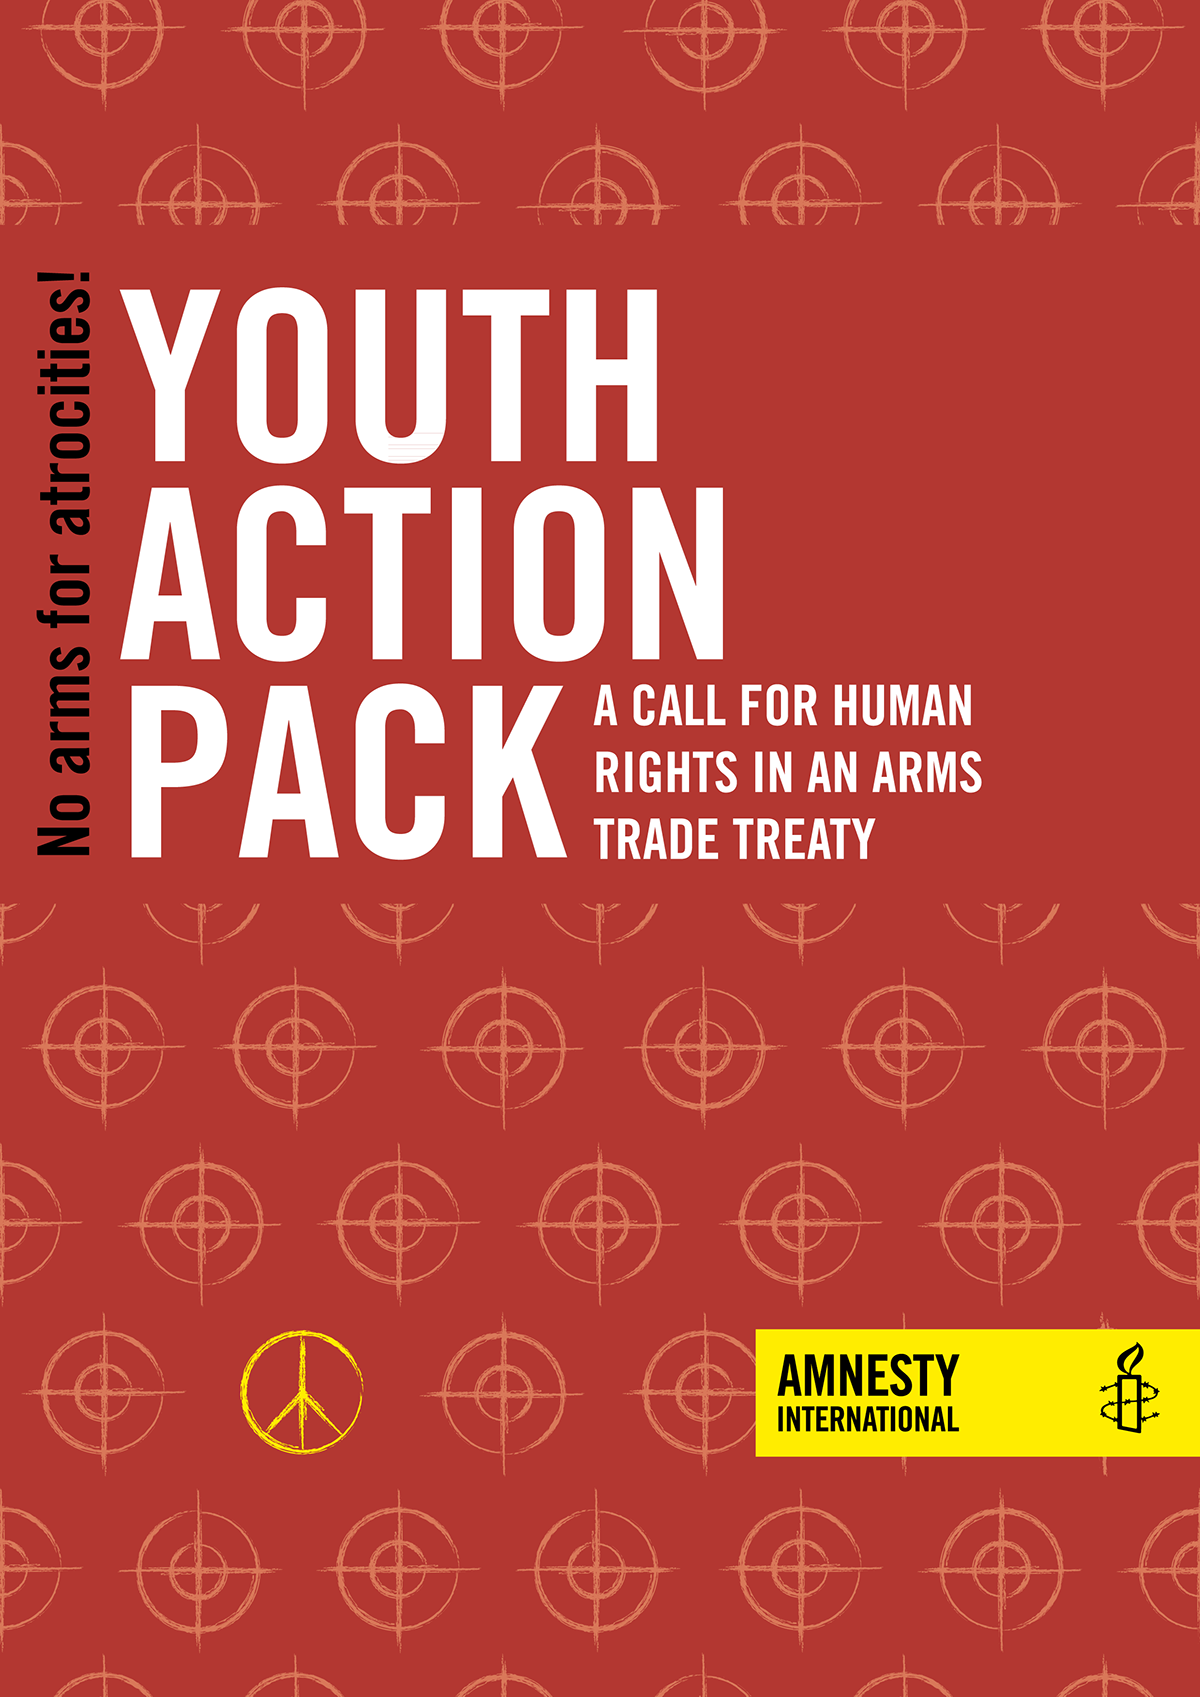 Youth Action Pack Amnesty International [editorial]